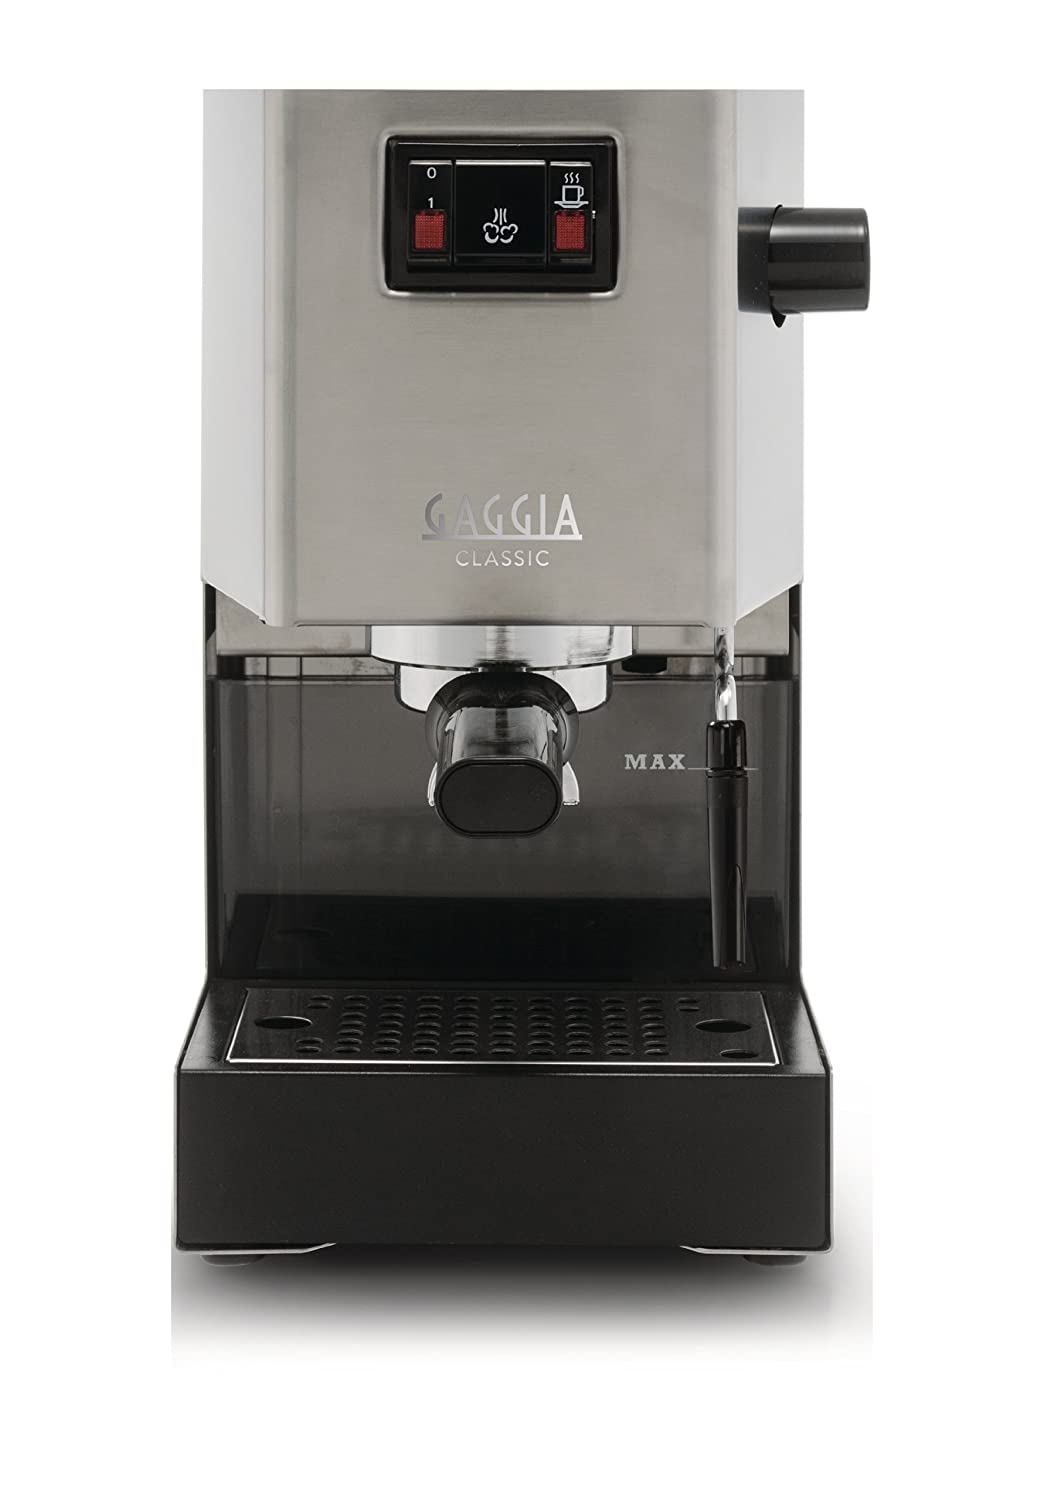 Electronic Classic Gaggia Coffee Machine gaggia classic ri8161 coffee machine with professional filter holder stainless steel body amazon co uk kitchen home